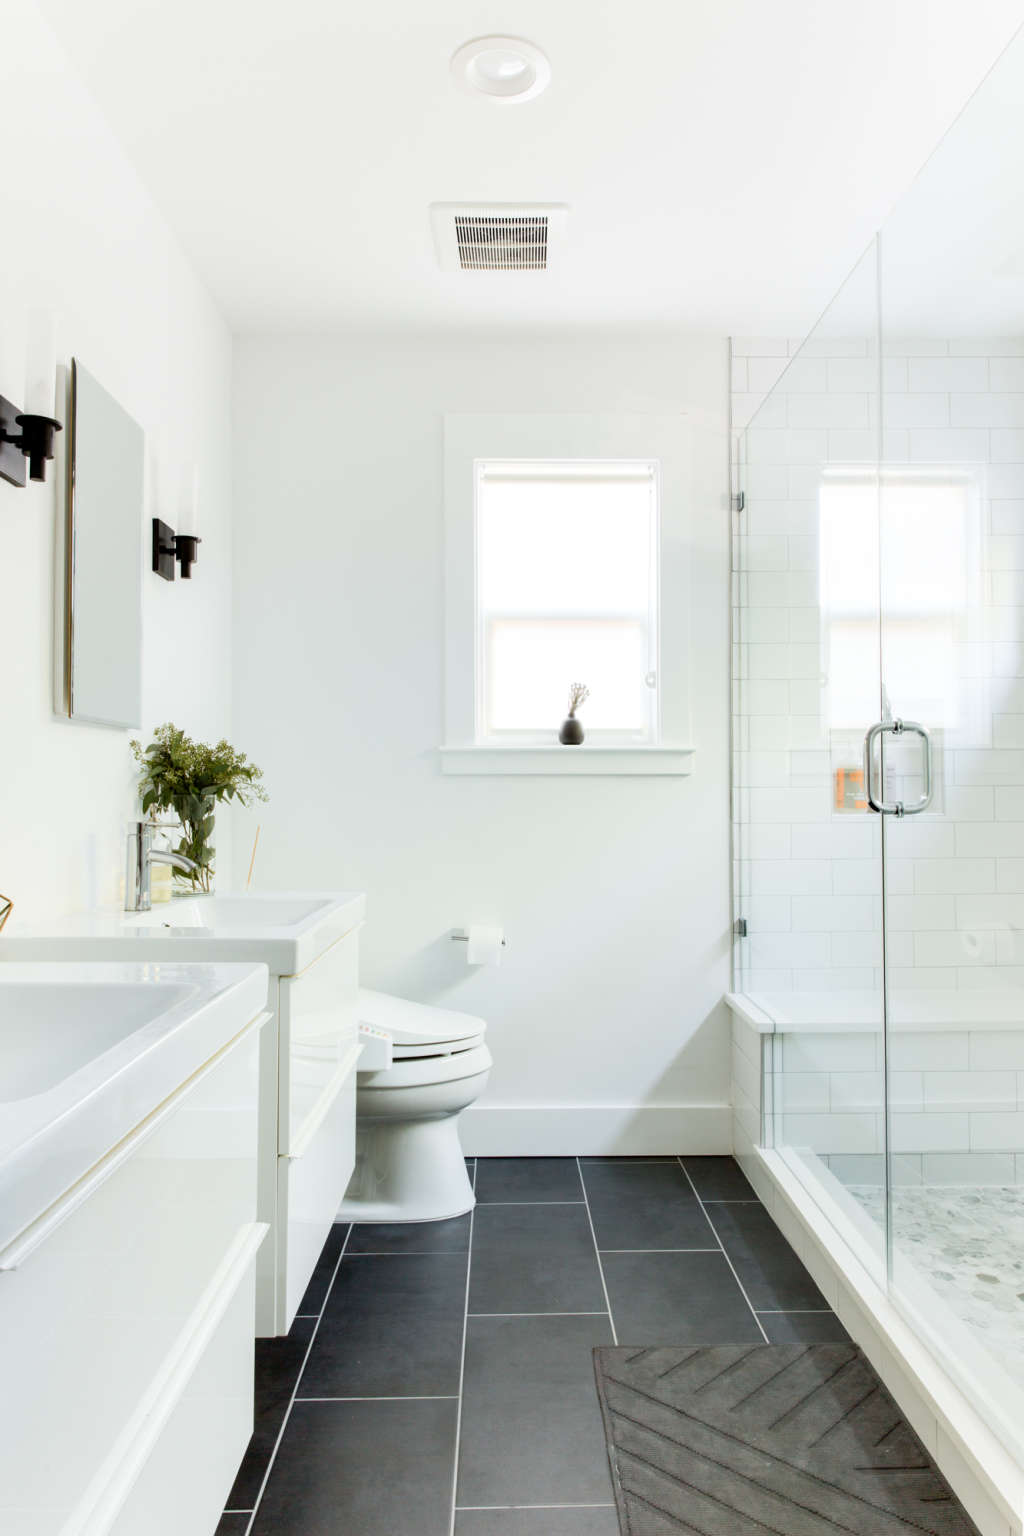 Bathroom Caulk - How Often Should You Replace? | Apartment Therapy